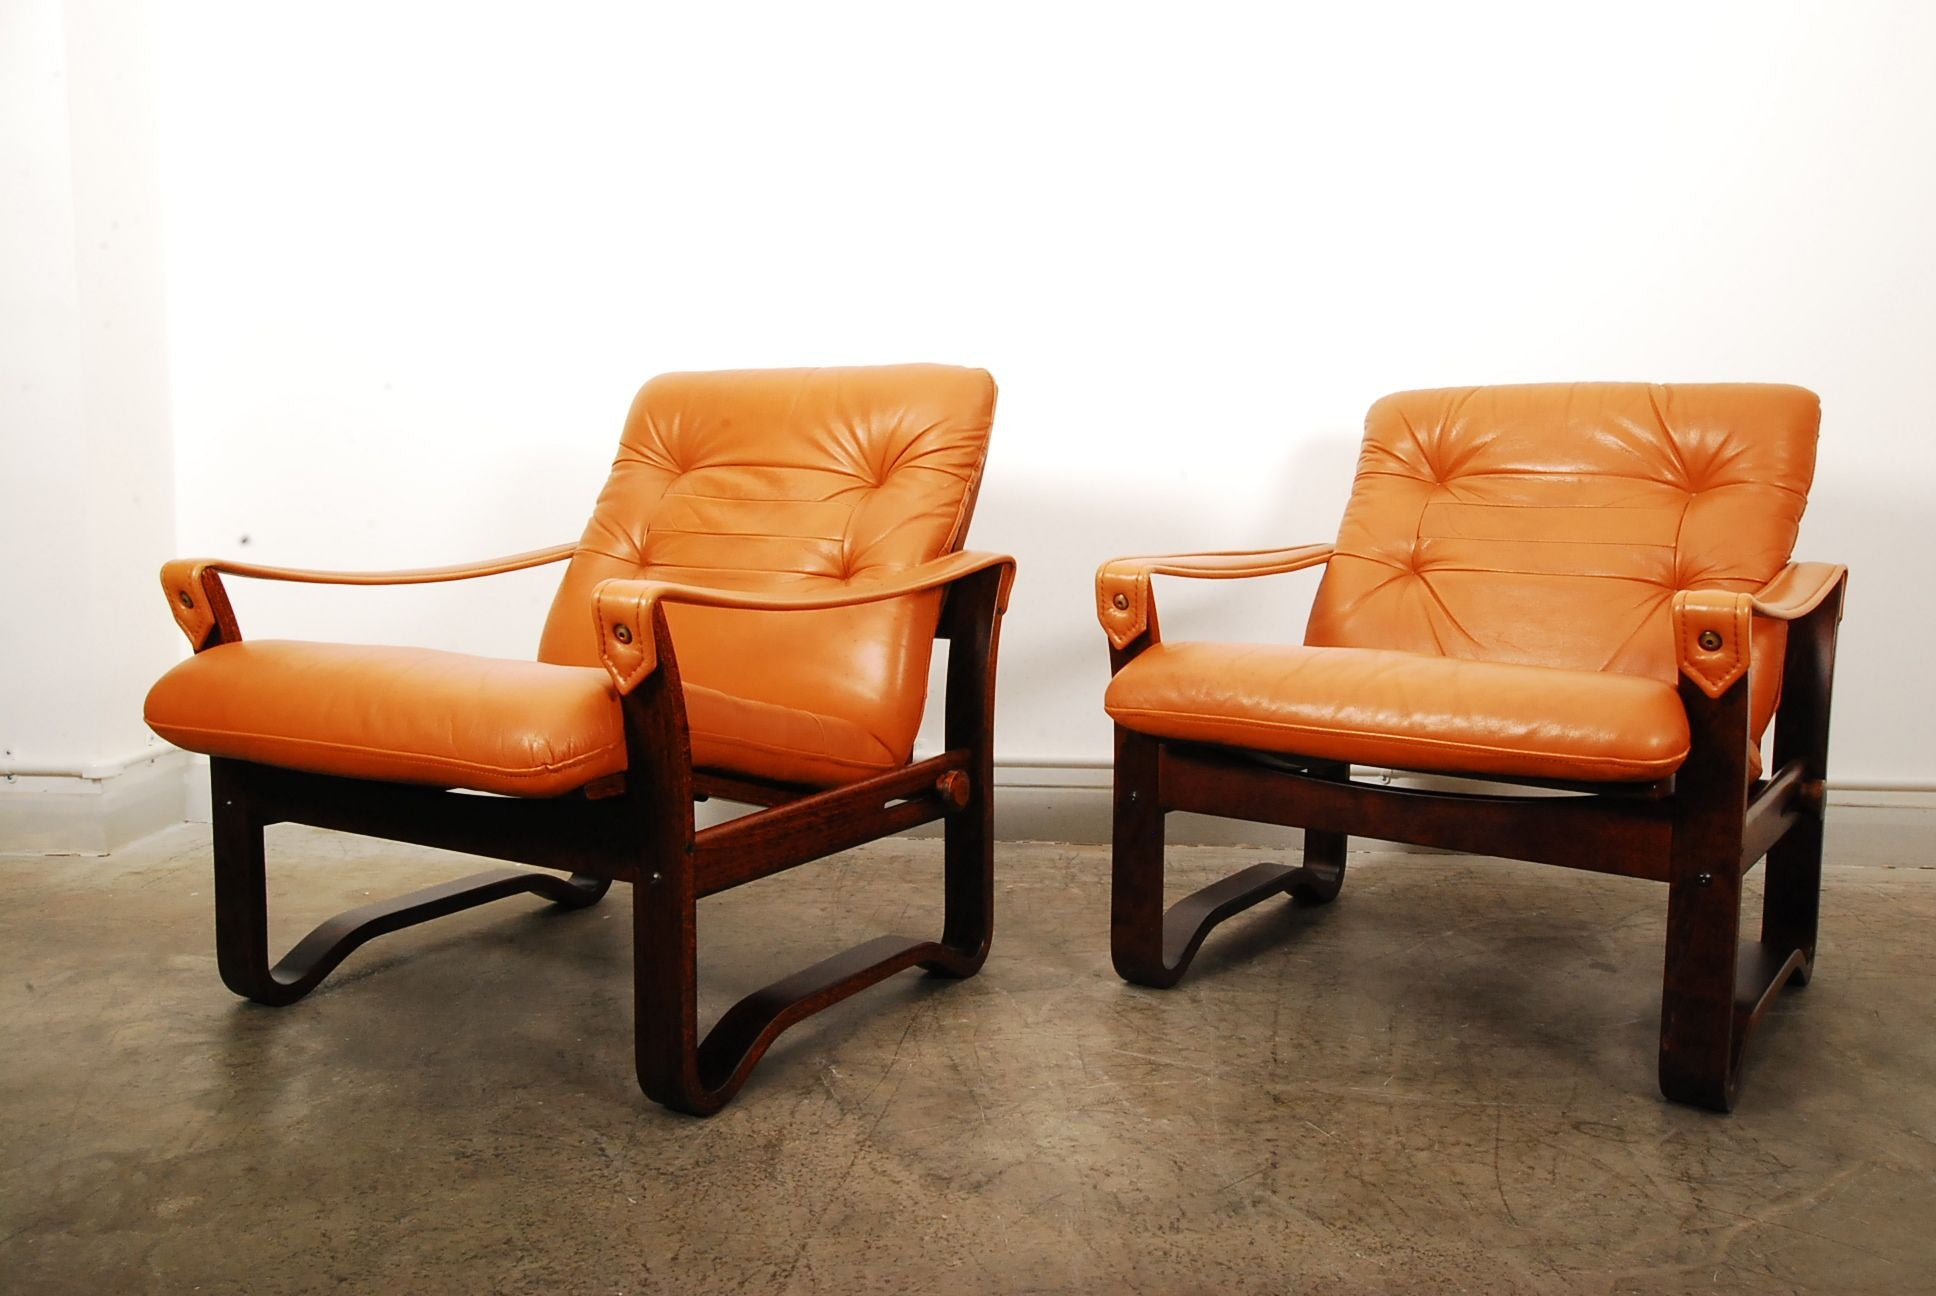 Pair of reclining loungers